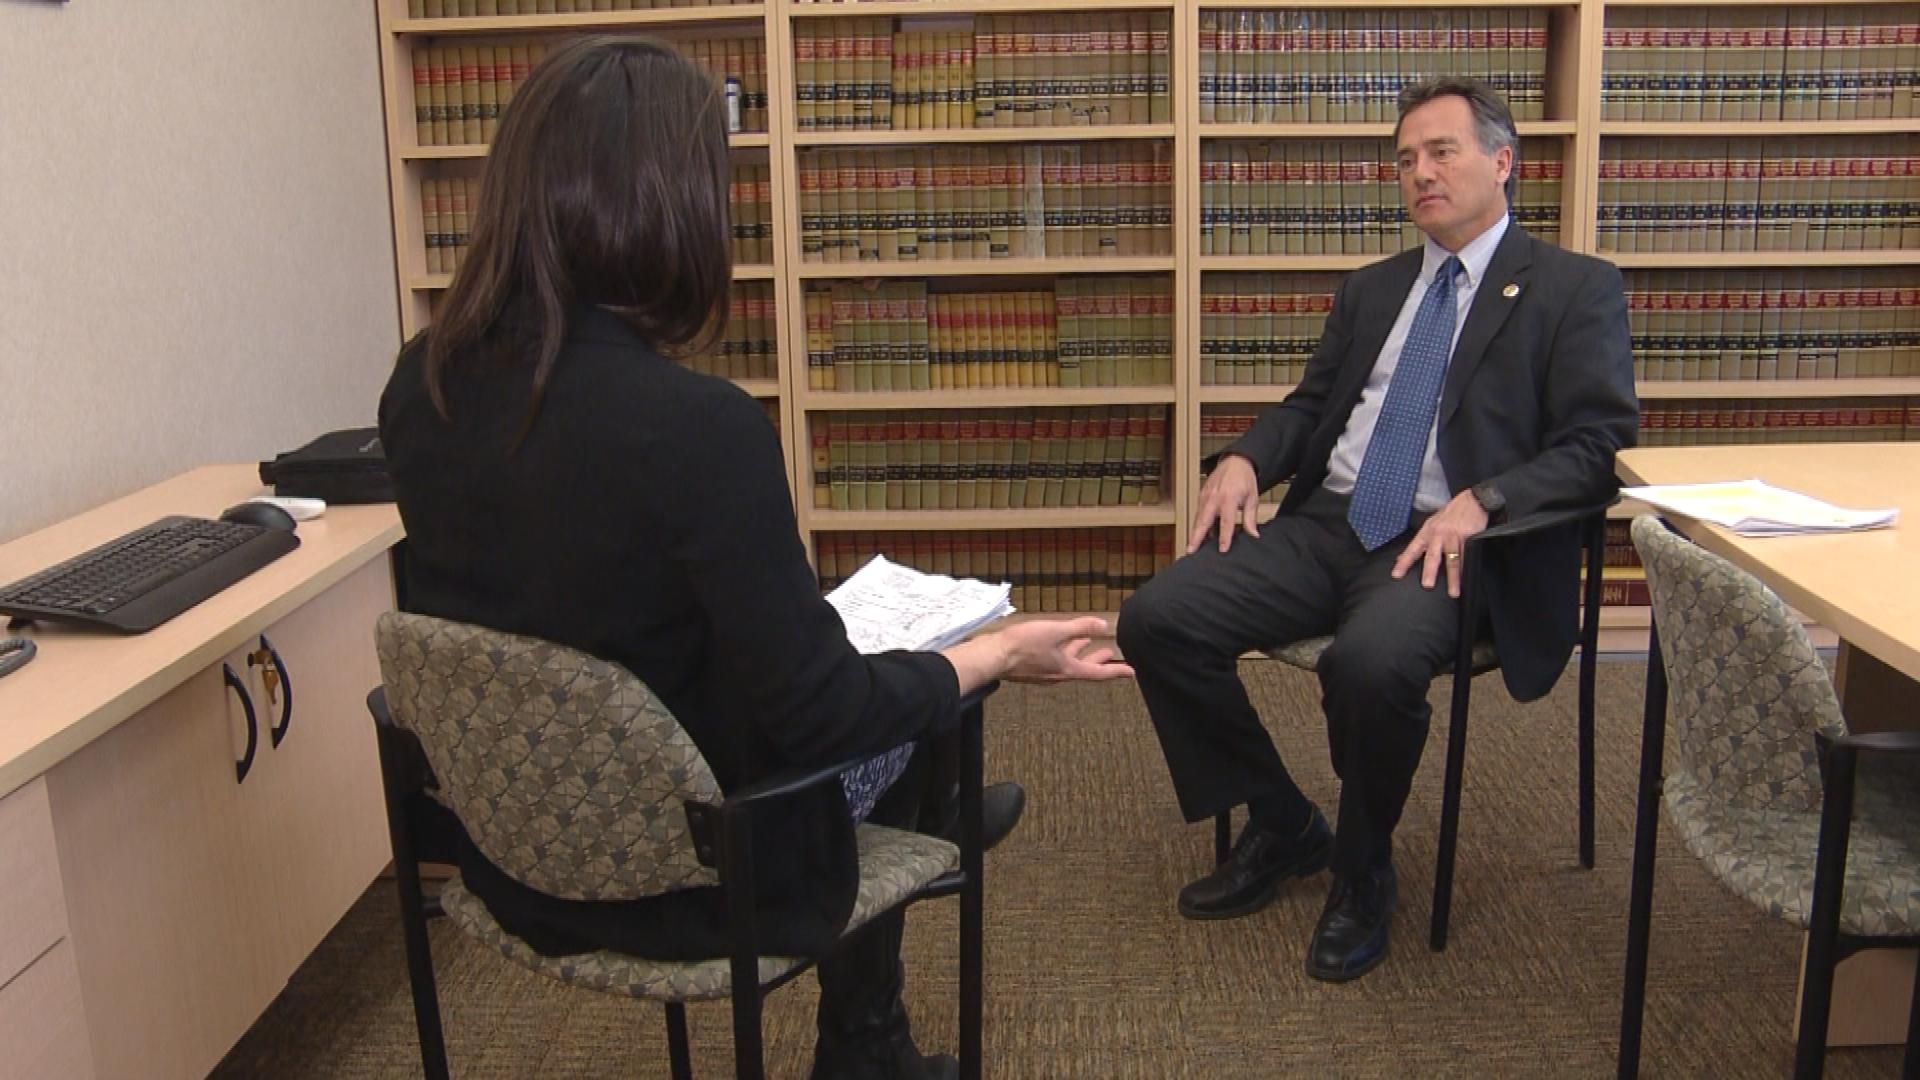 CBS4's Karen Morfitt interviews Adams County District Attorney Dave Young (credit: CBS)